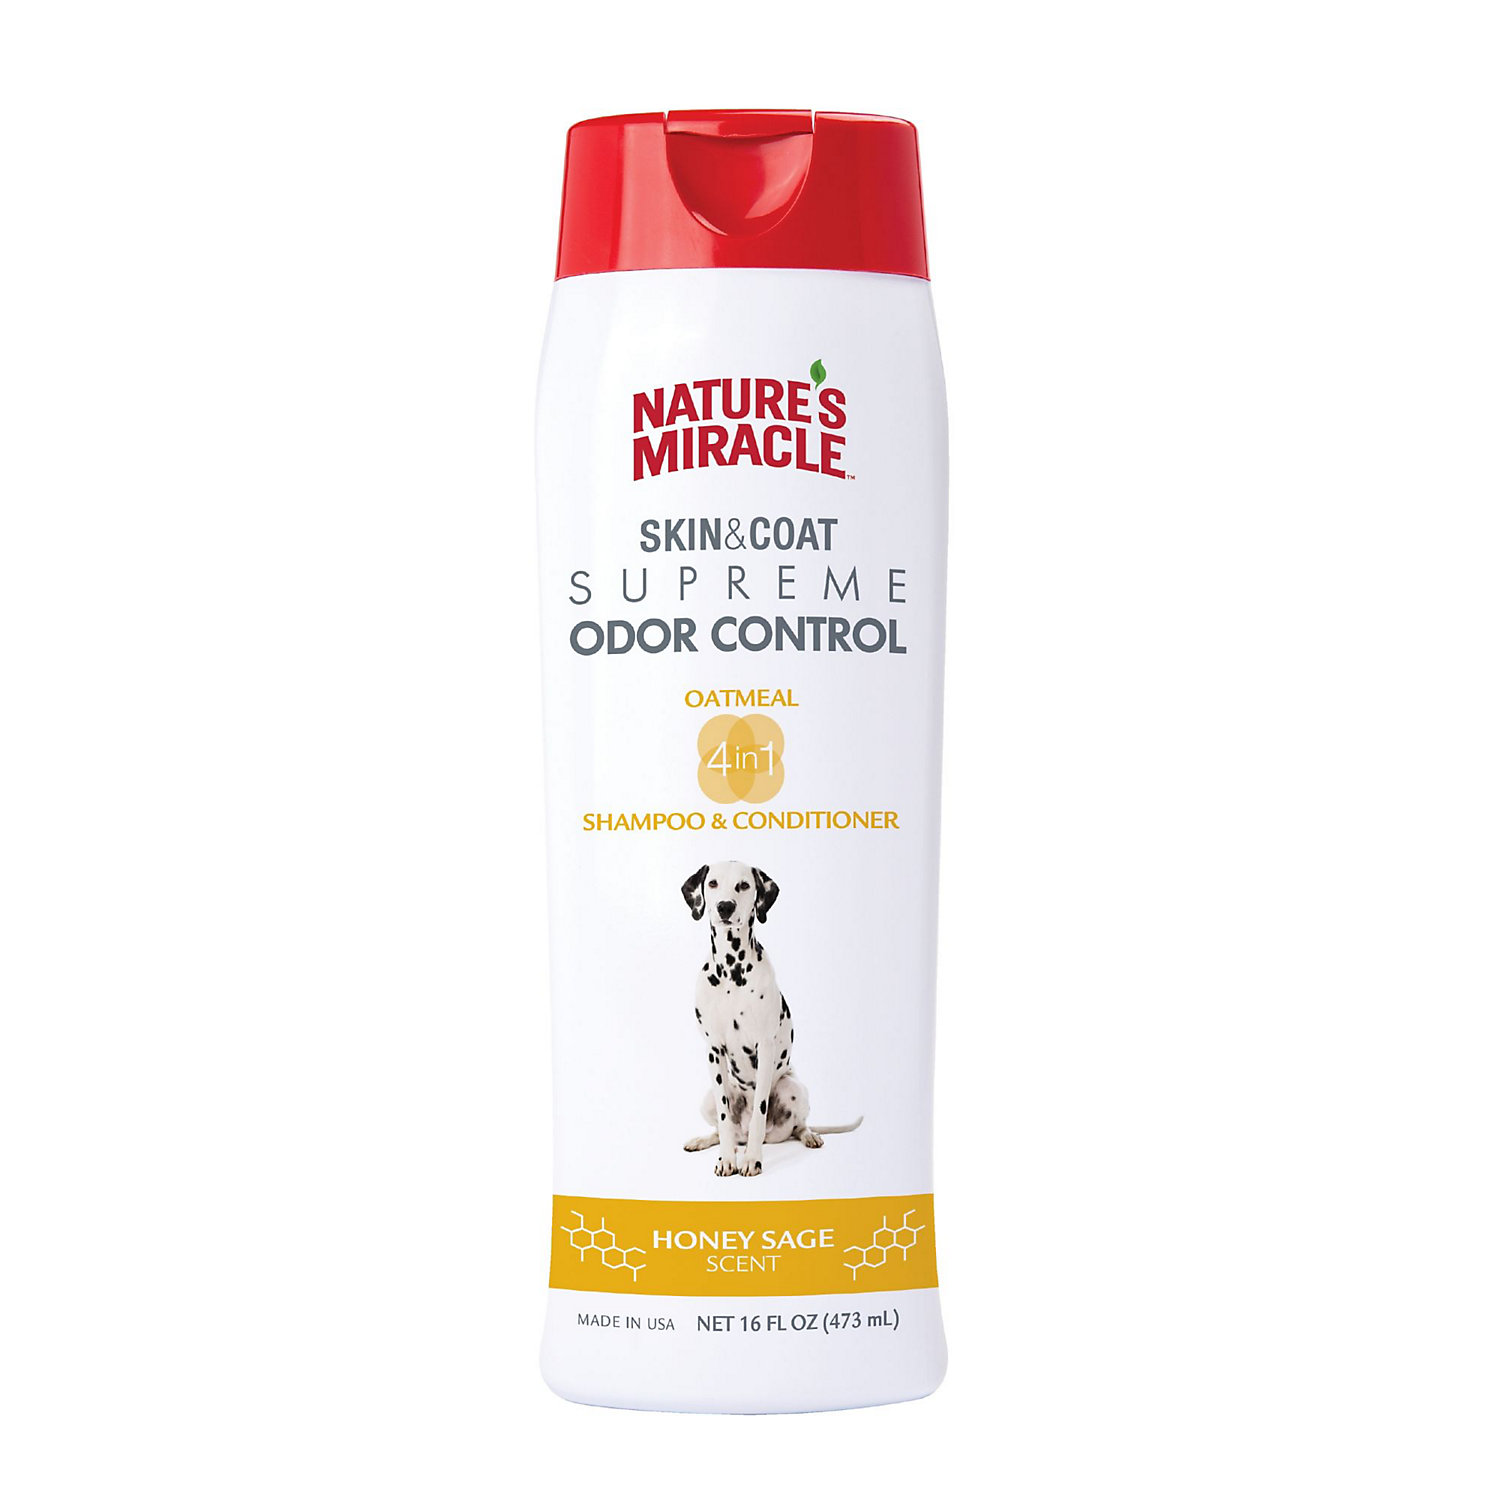 Natures Miracle Supreme Odor Control Natural Oatmeal Dog Shampoo & Conditioner, 16 Fl. Oz.